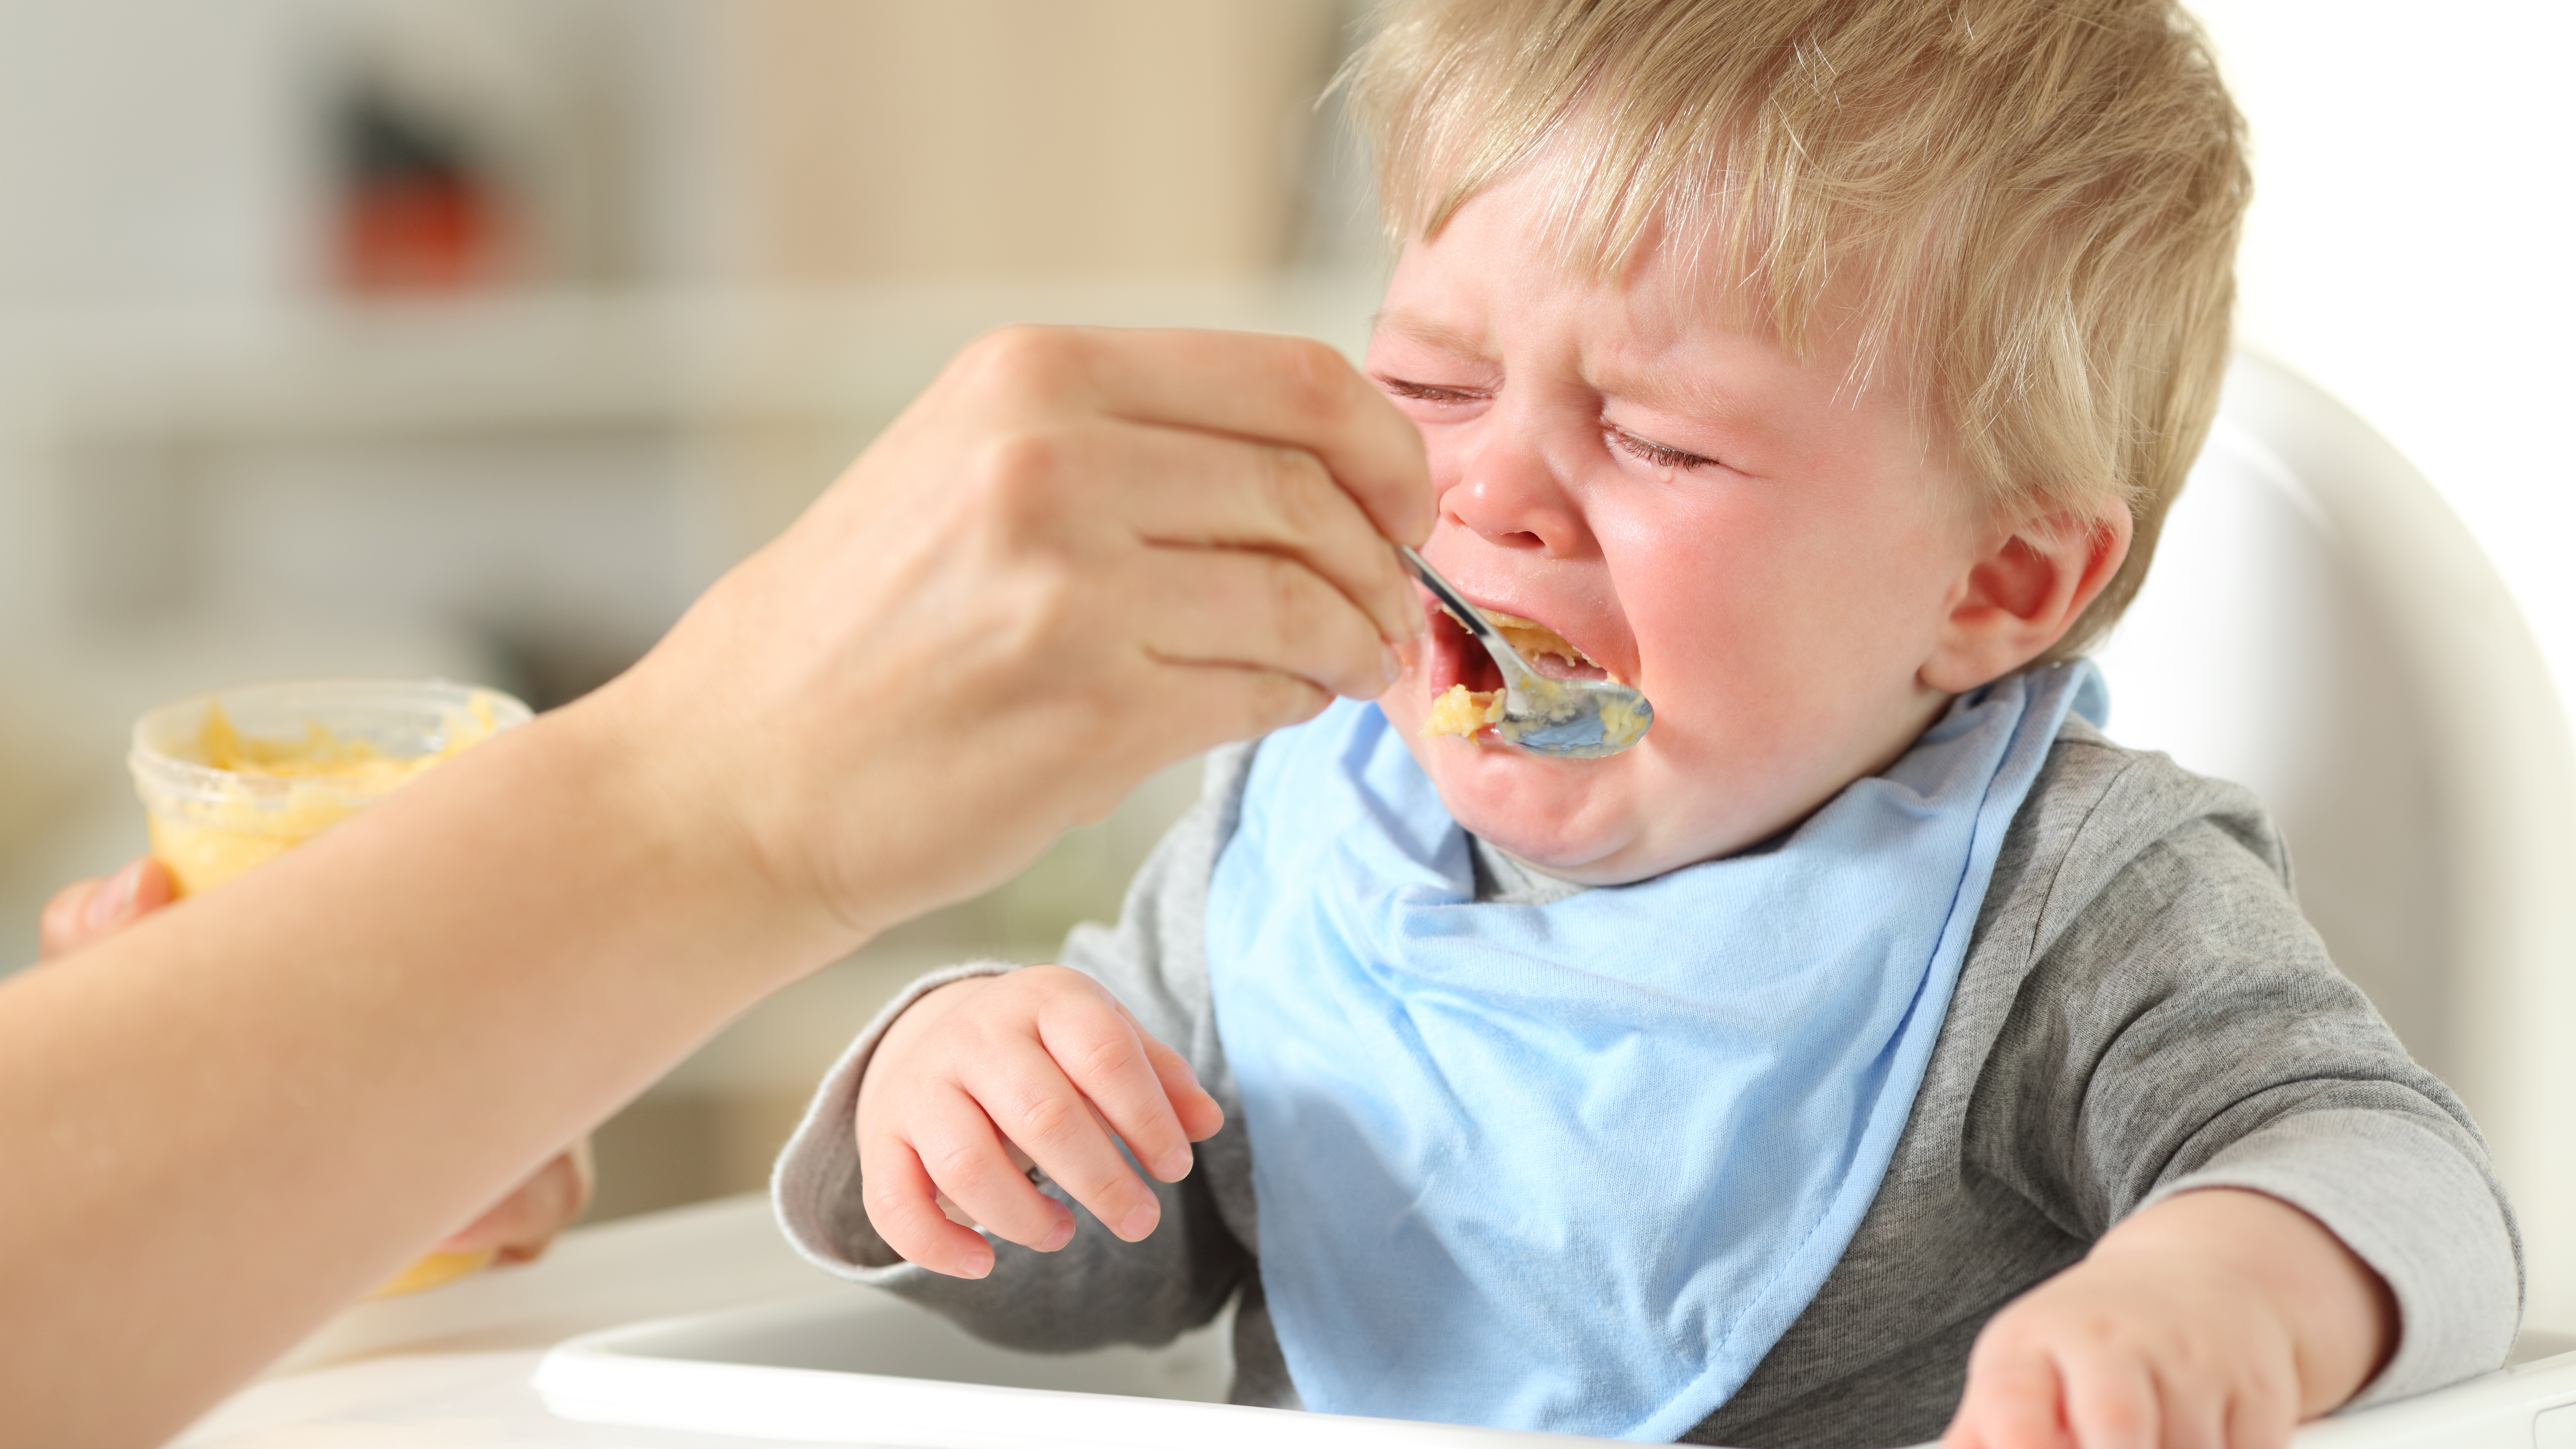 Why does the child not eat well